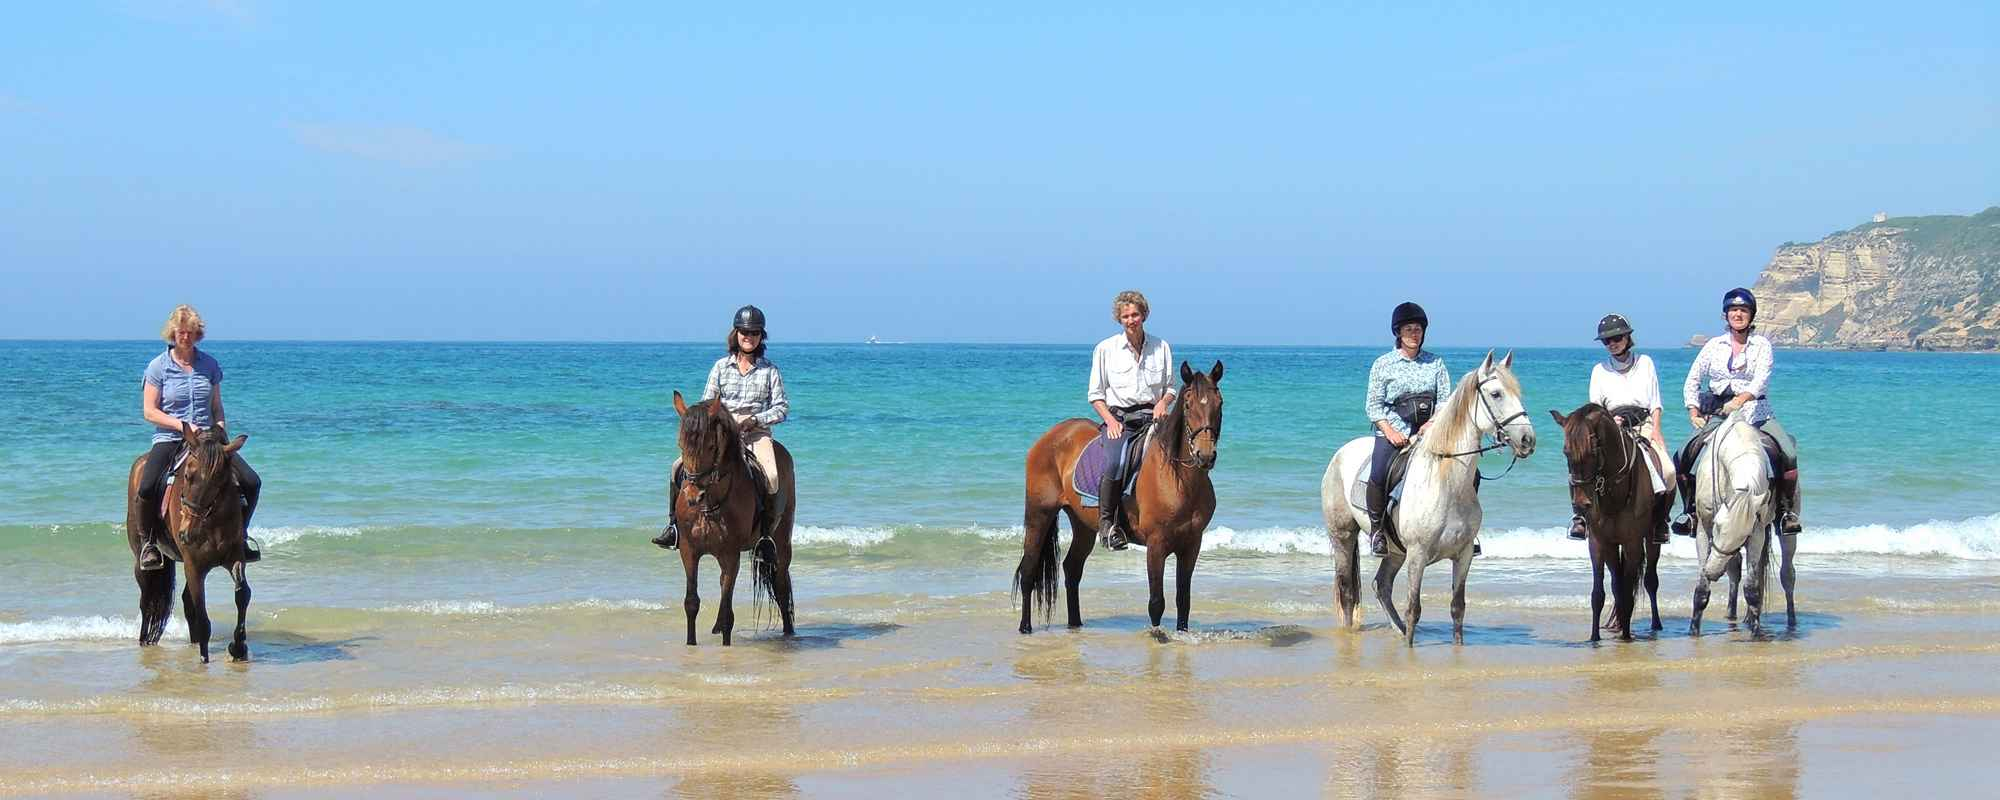 horse riding in spain